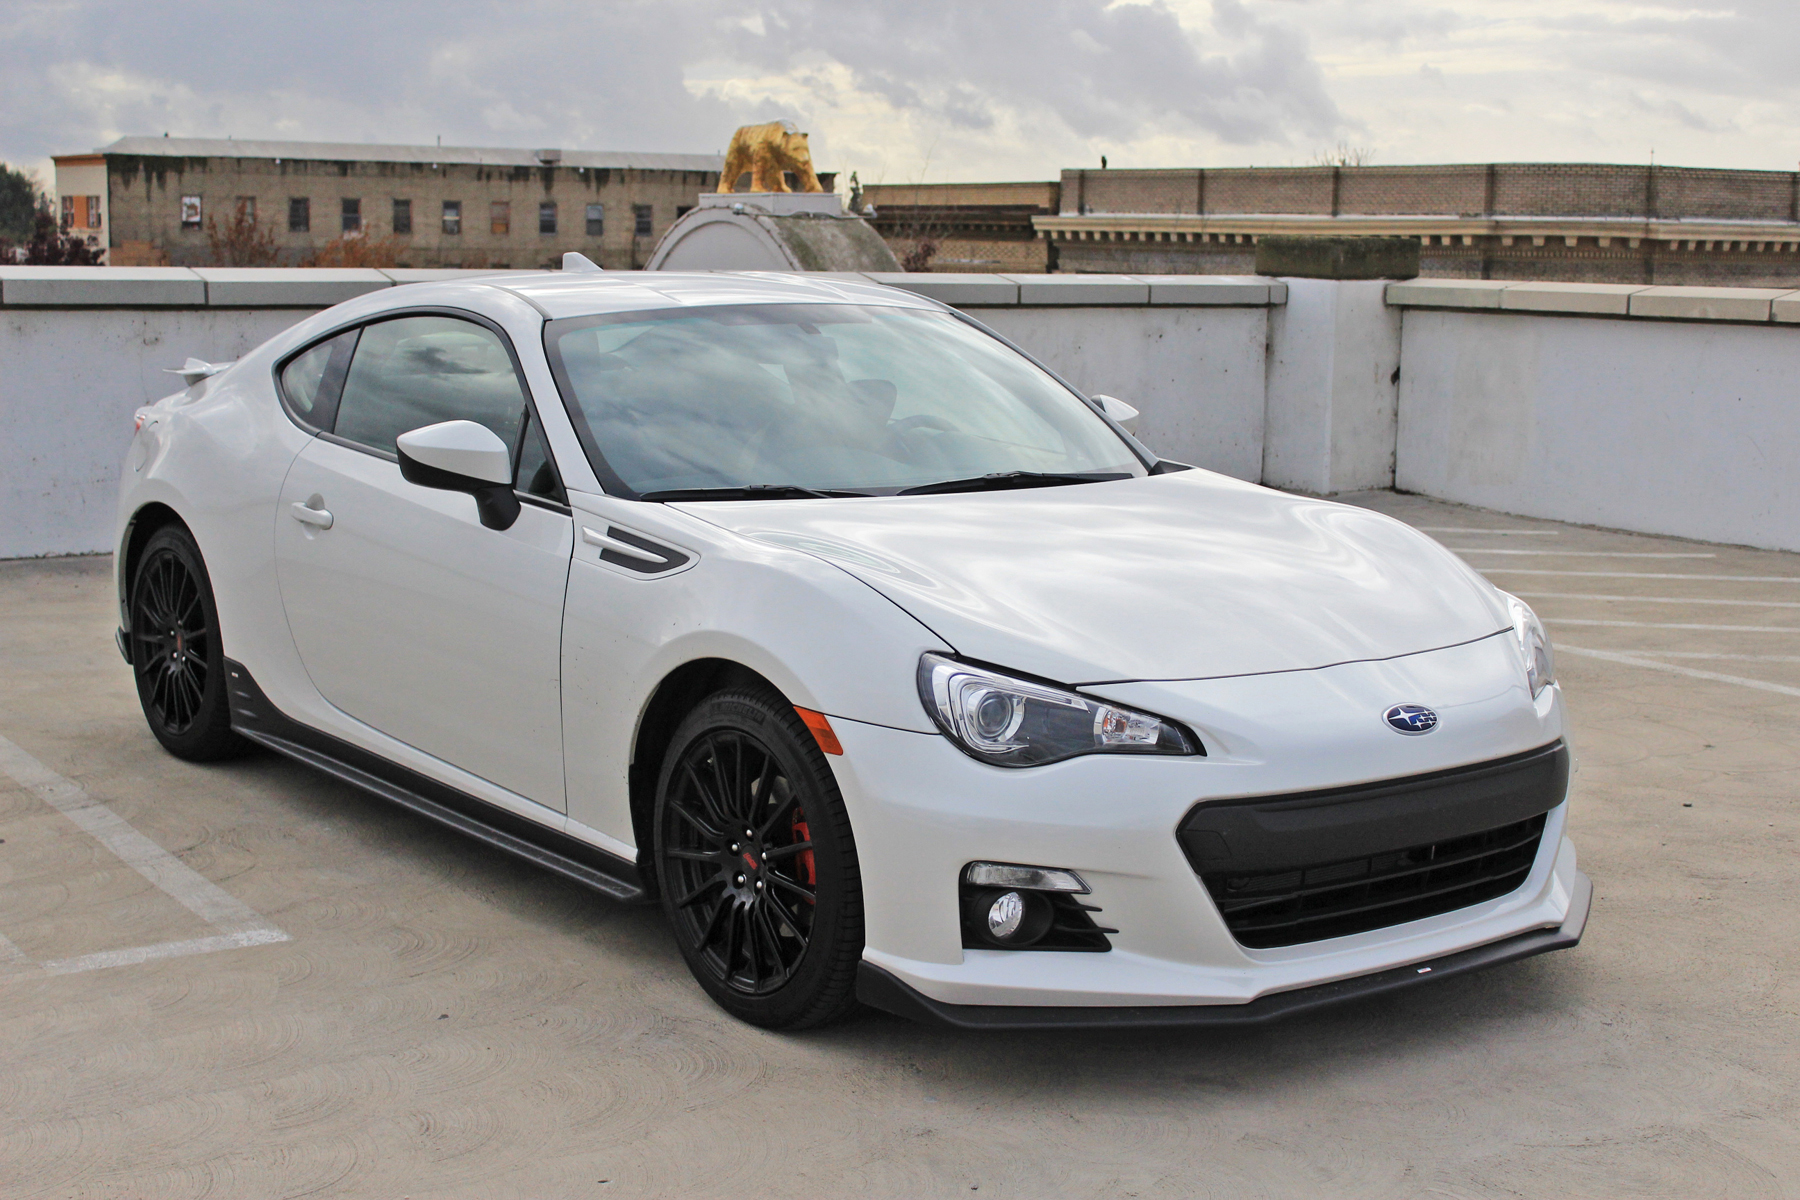 2015 subaru brz series blue carfanatics blog. Black Bedroom Furniture Sets. Home Design Ideas